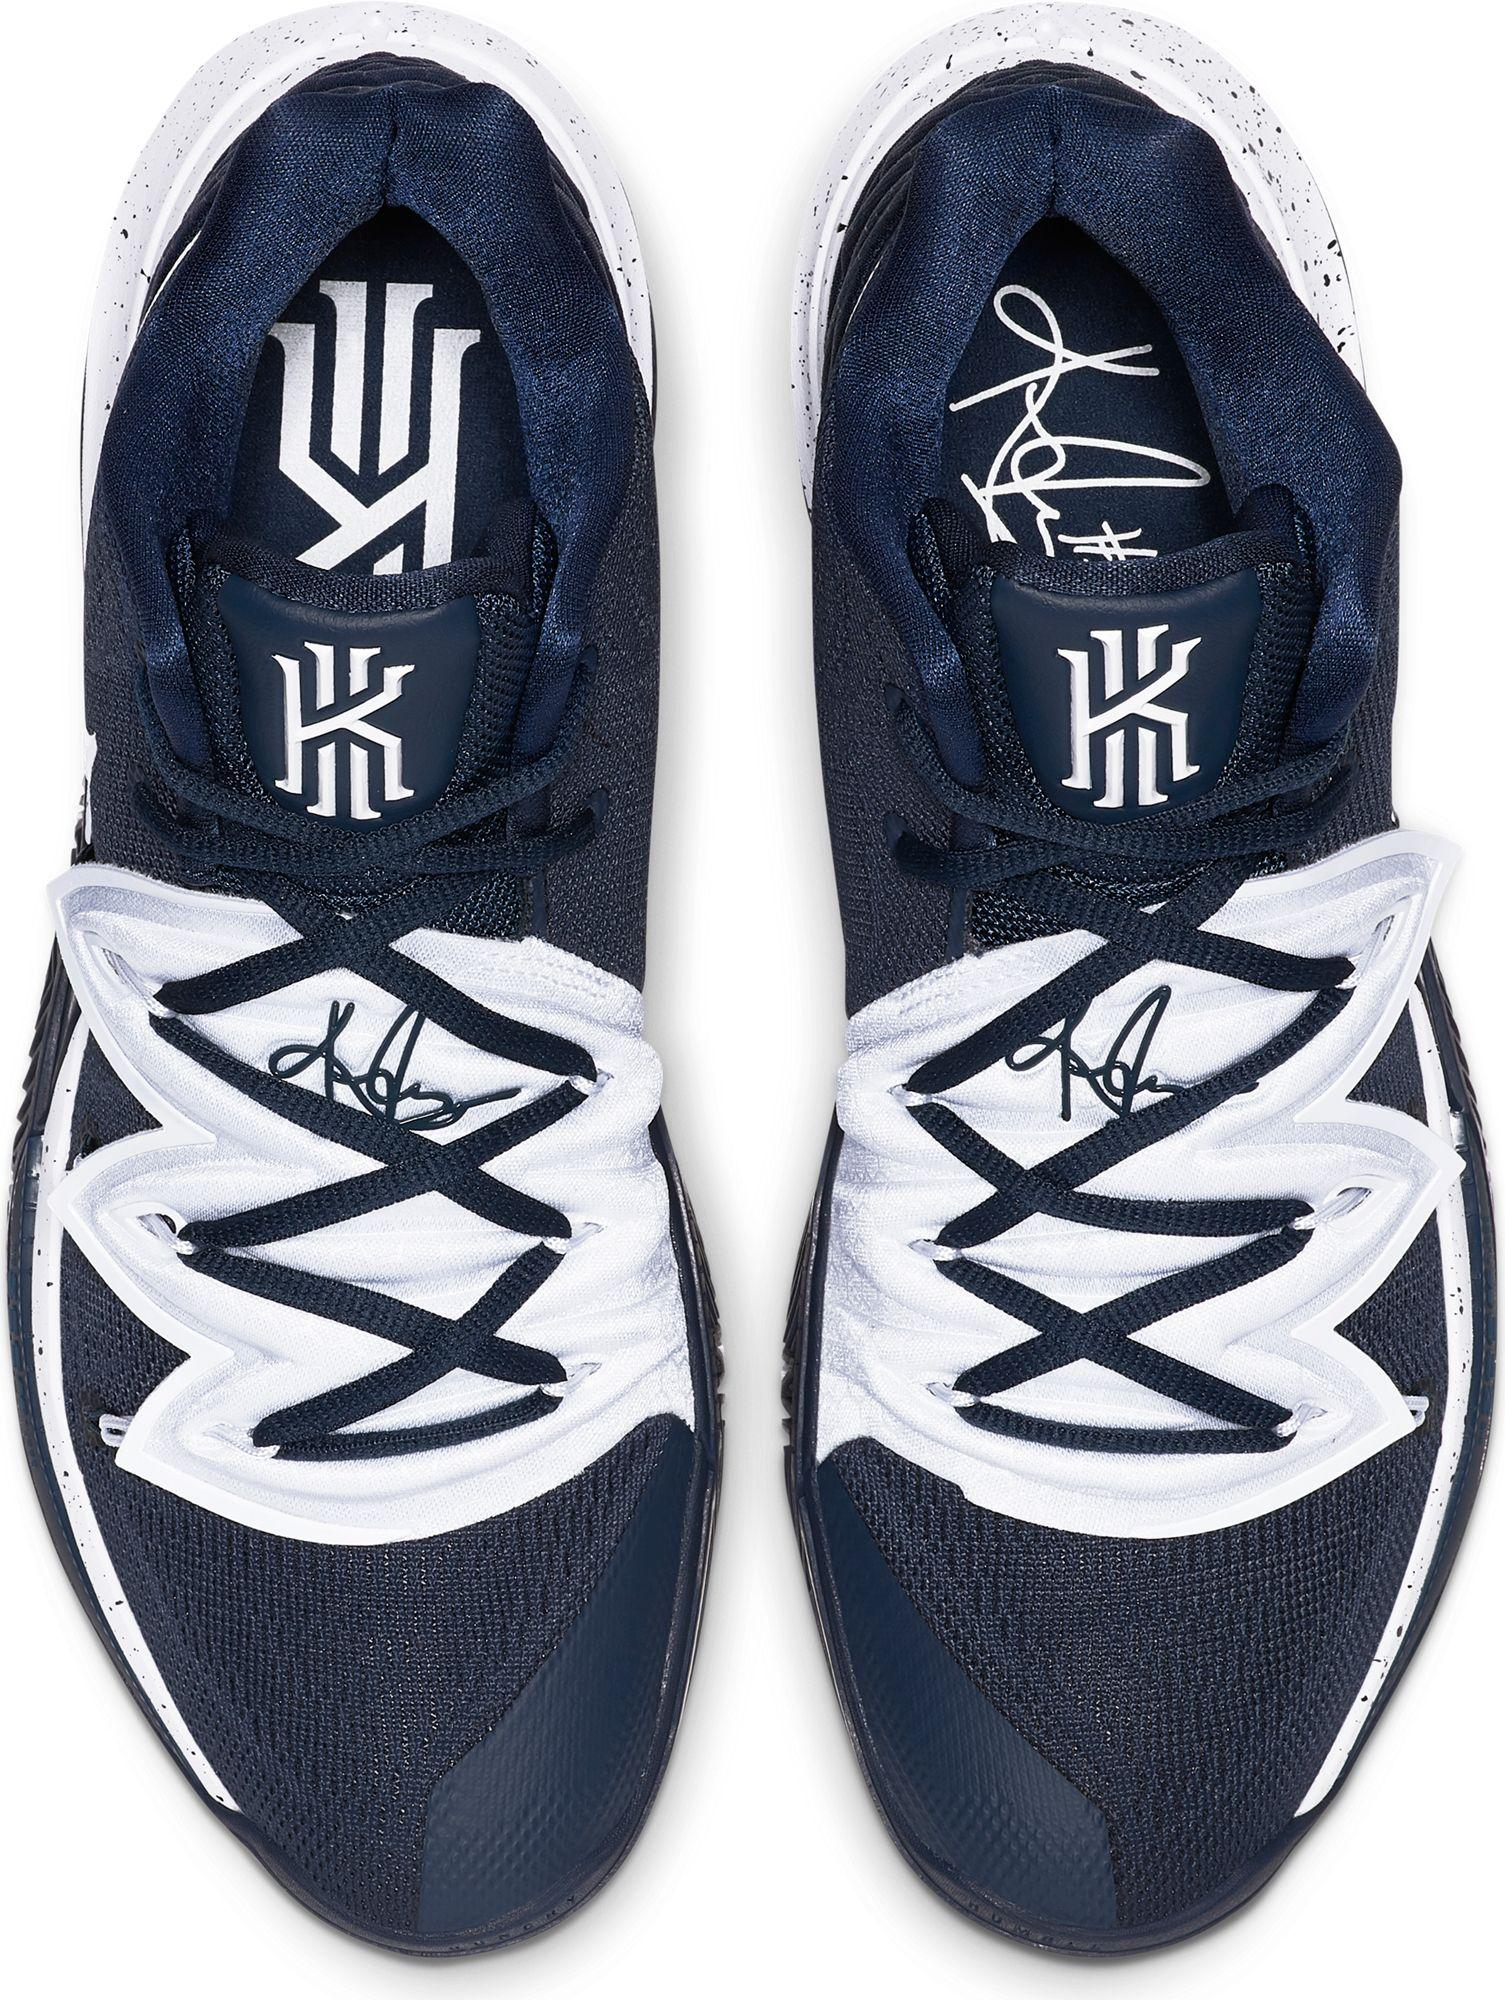 Nike Kyrie 5 Basketball Shoes in Navy